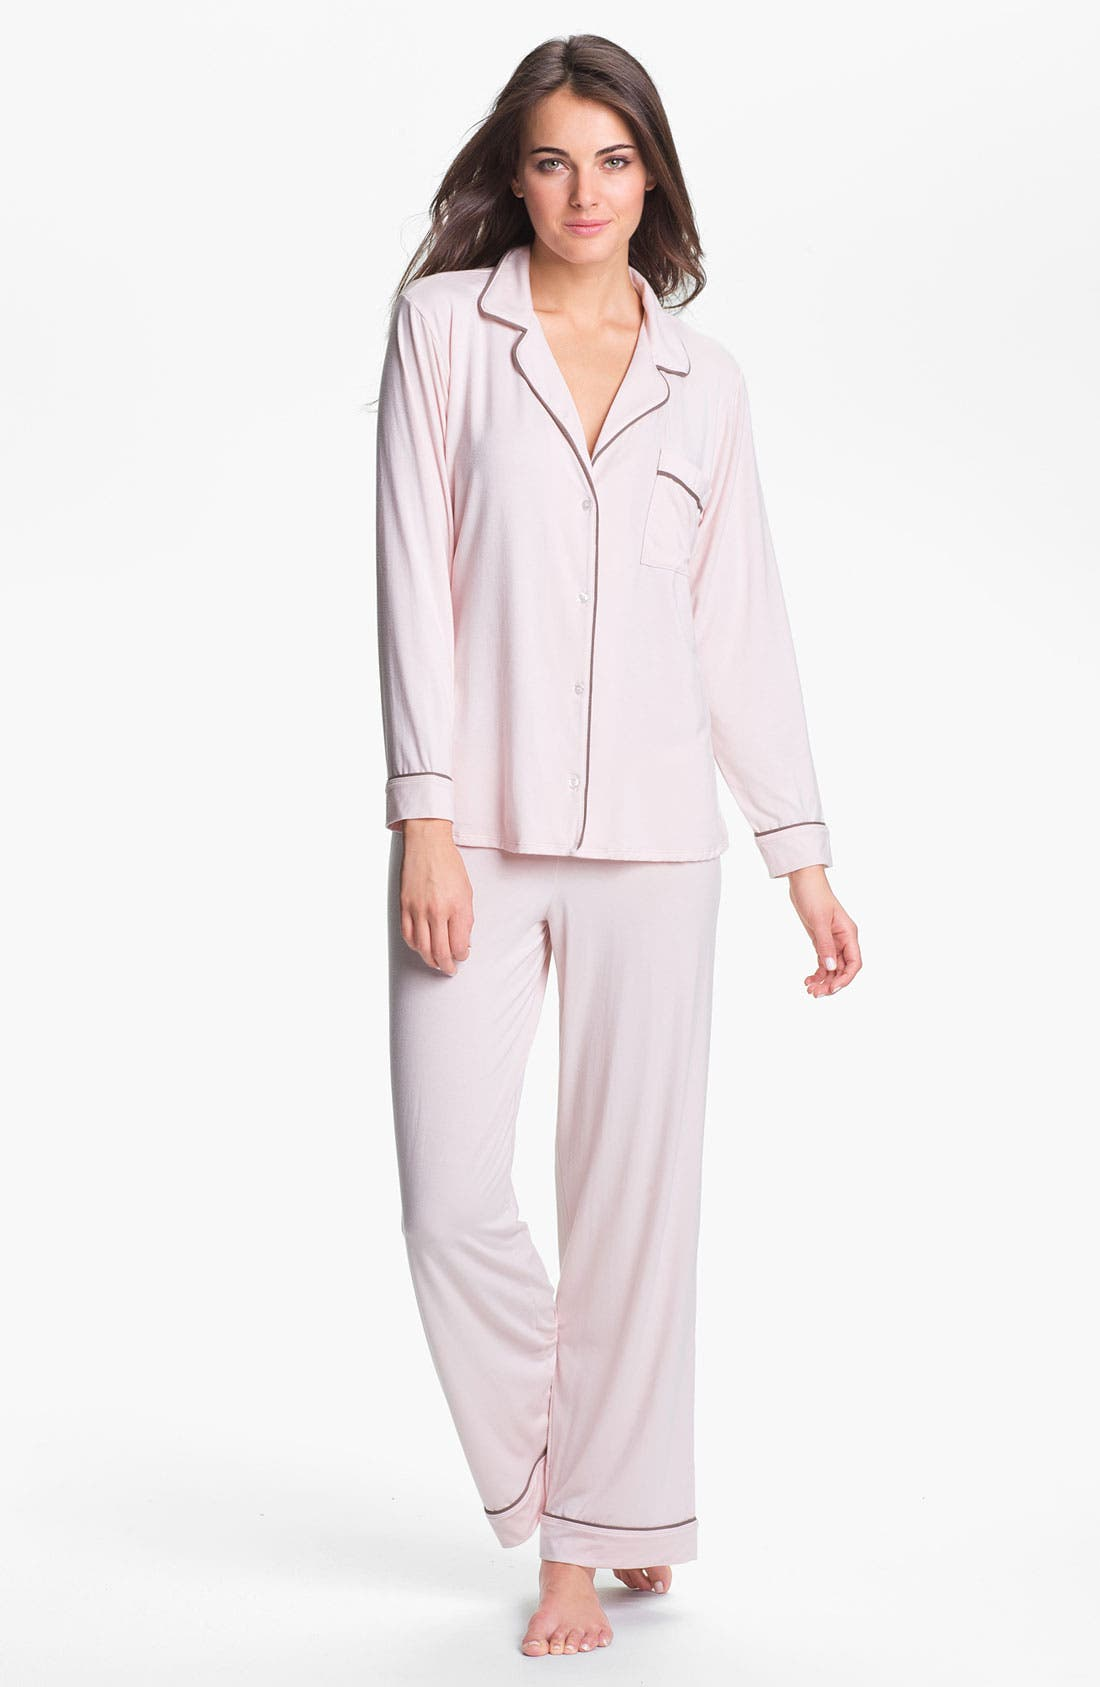 'Giselle' Pajamas,                         Main,                         color, Sorbet Pink/ Pebble